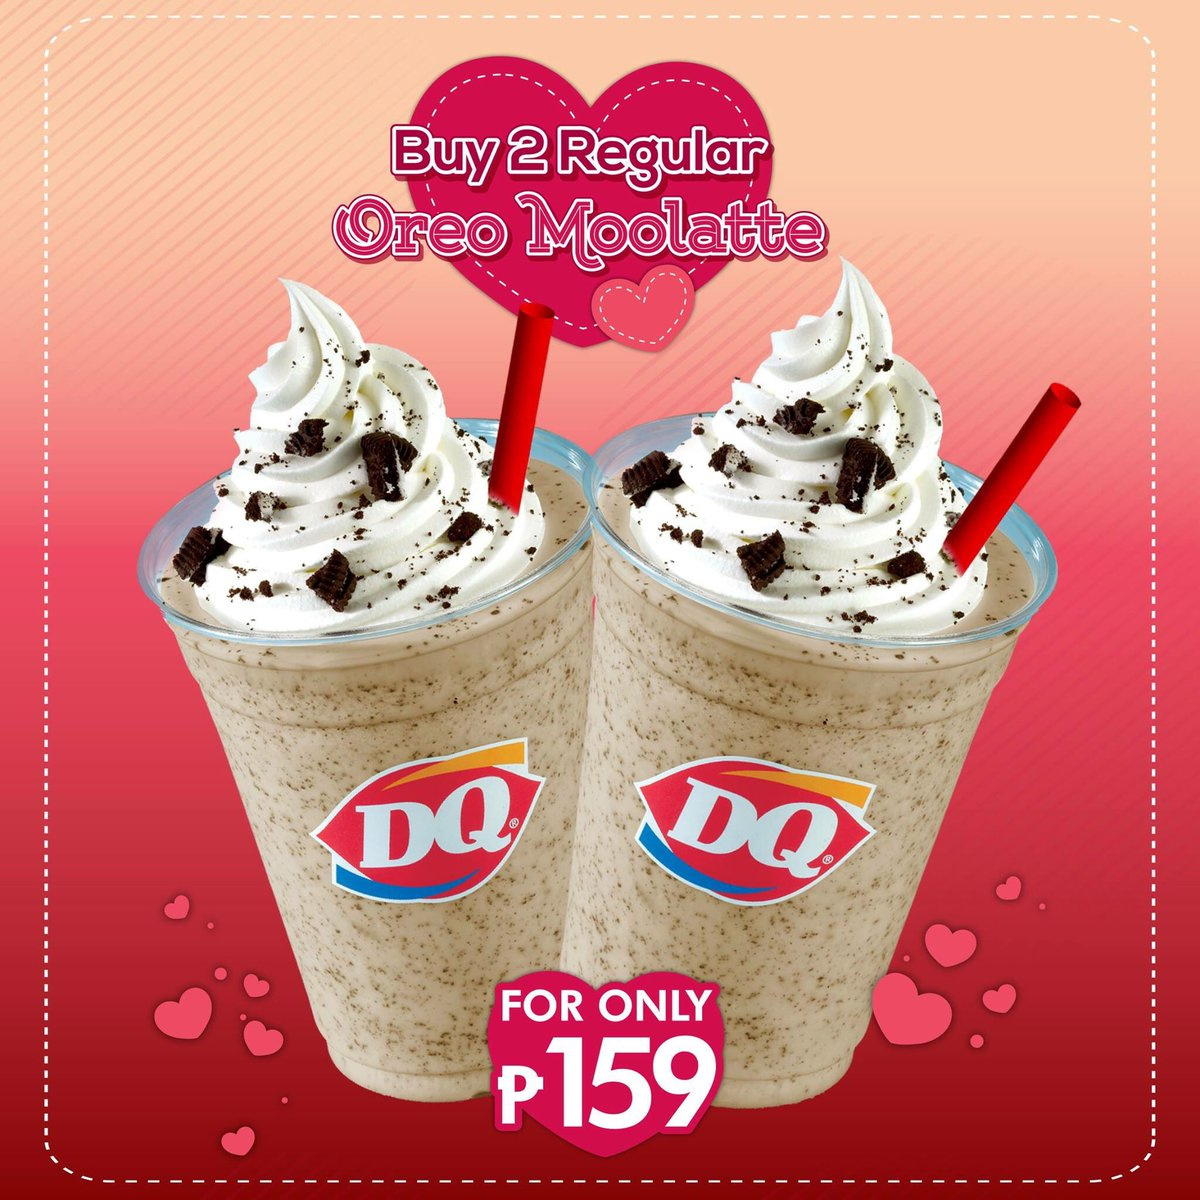 Make your day lovelier than ever by getting our 2 Regular Oreo Moolatte for only P159. Visit #DairyQueenPH now & get this Valentines treat! https://t.co/aUxgG5U5rP